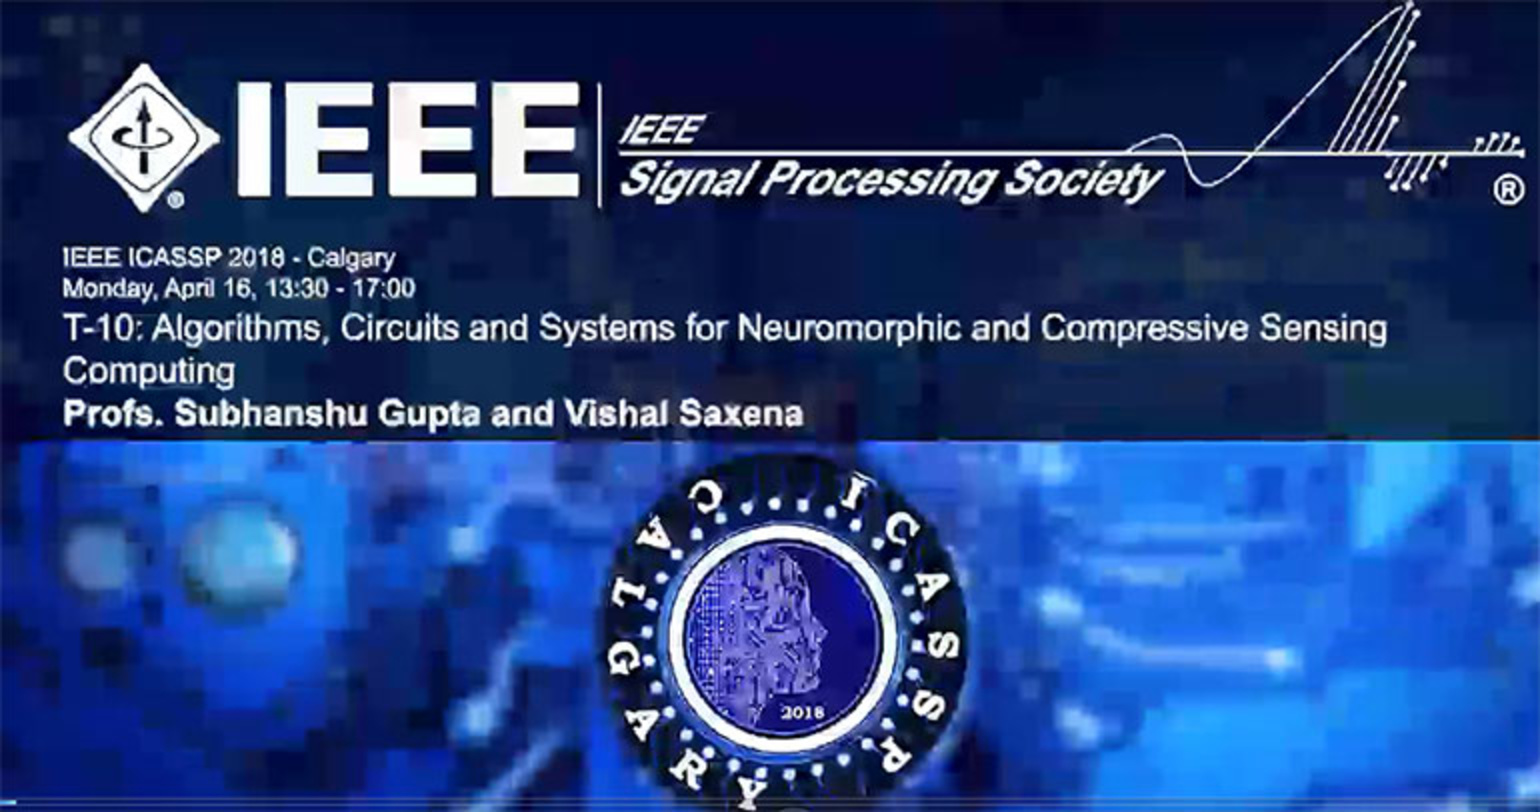 Tutorial 10 – Algorithms, Circuits and Systems for Neuromorphic and Compressive Sensing Computing